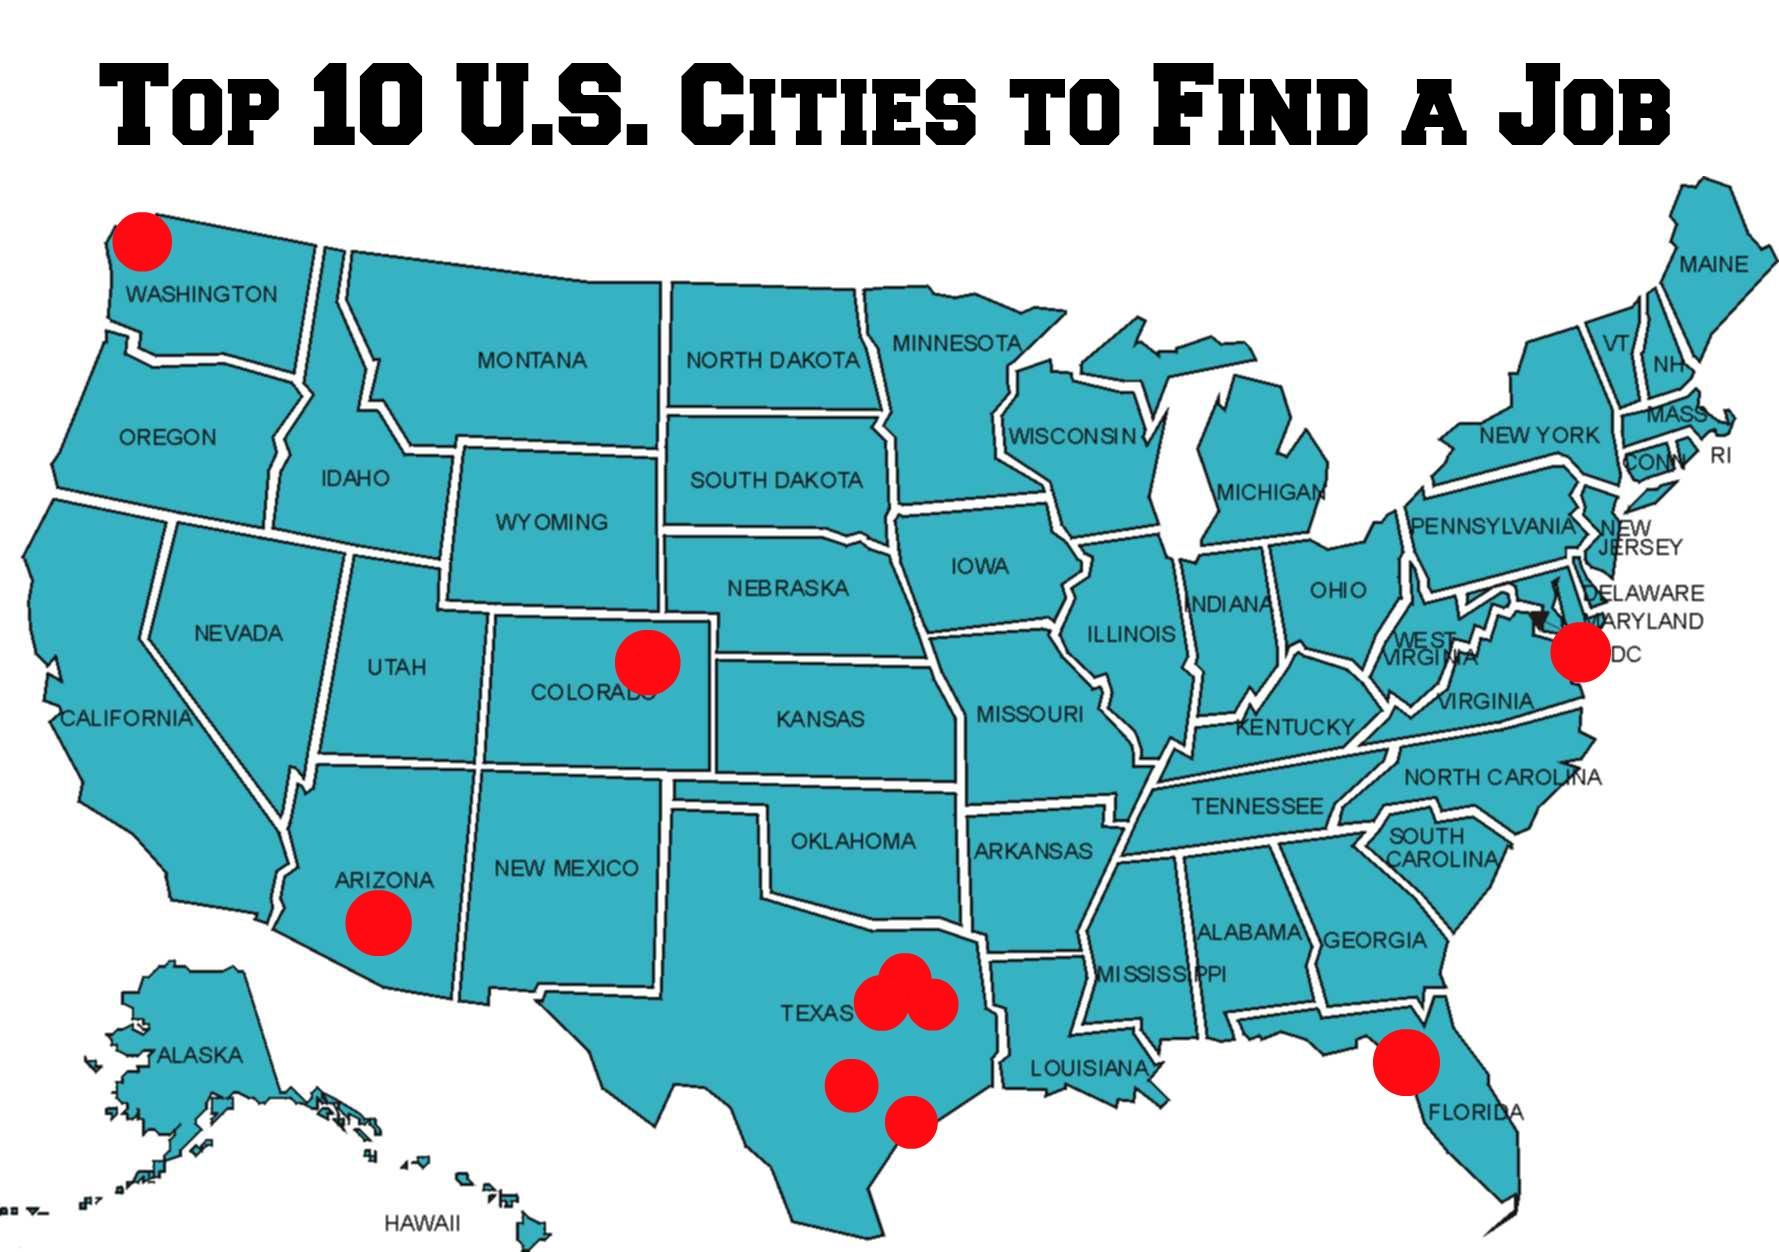 Top 10 U.S. Cities to Find a Job | United states map, State ...